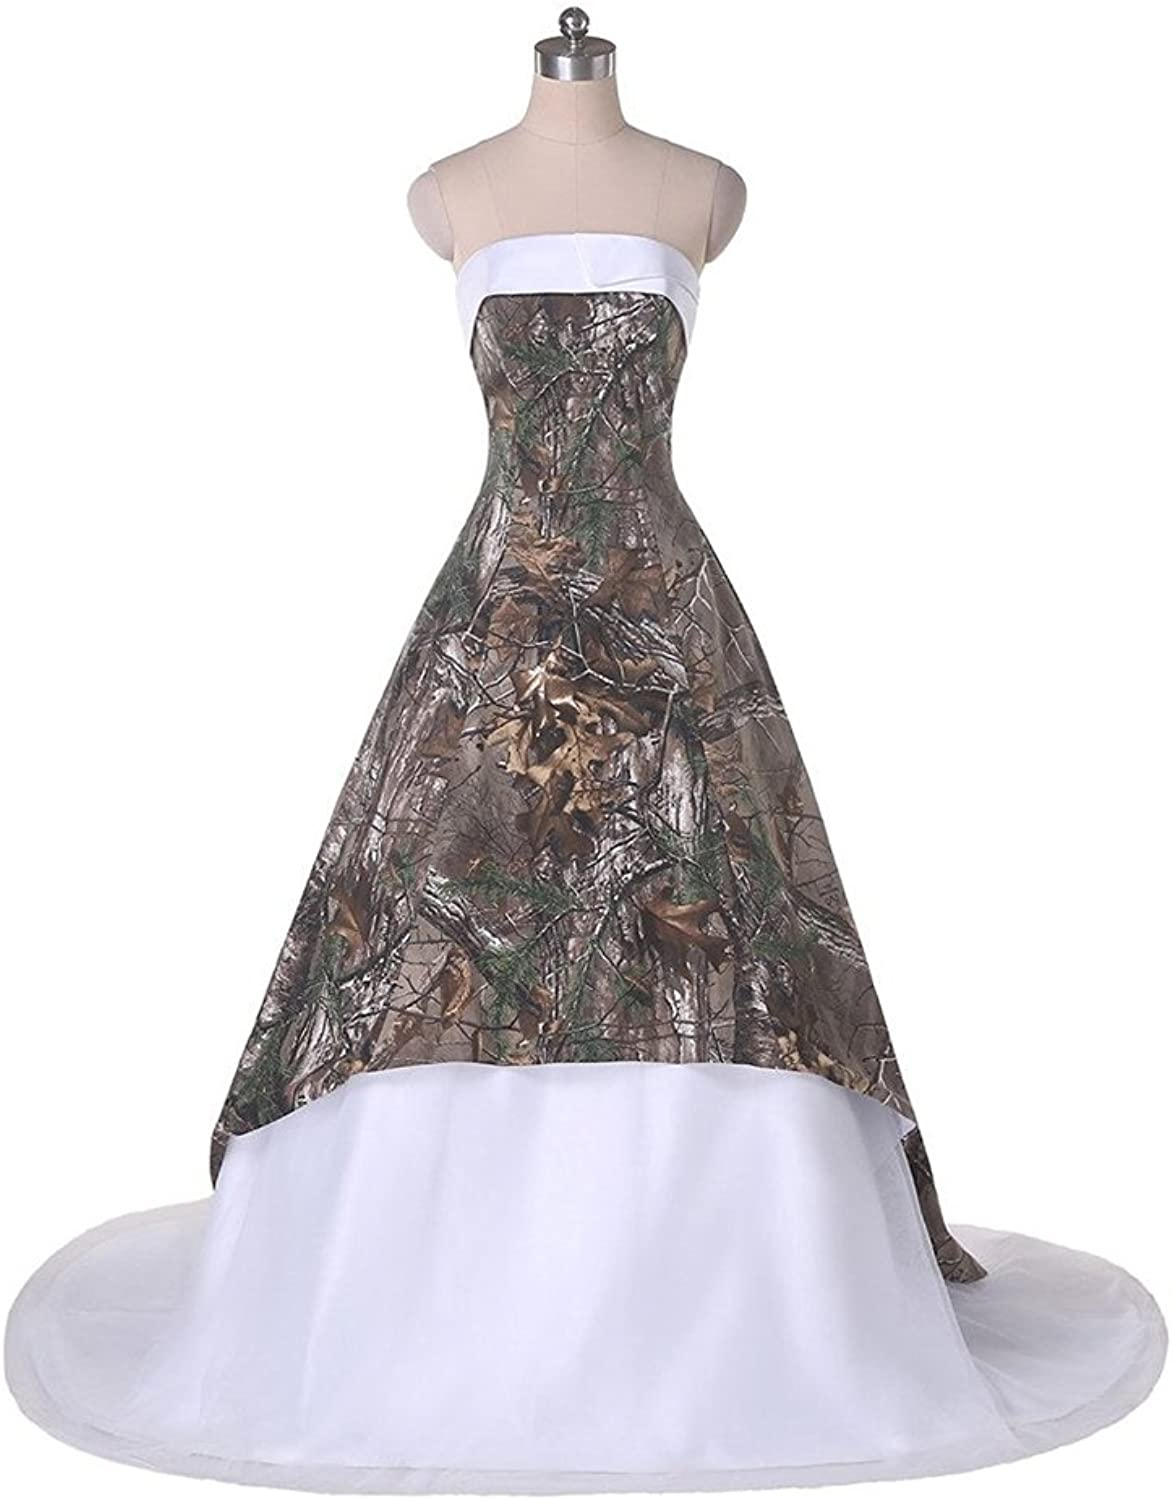 DianSheng Trendy Affordable Camo Prom Pageant Dress Ball Gown Strapless Wedding Gown AS752